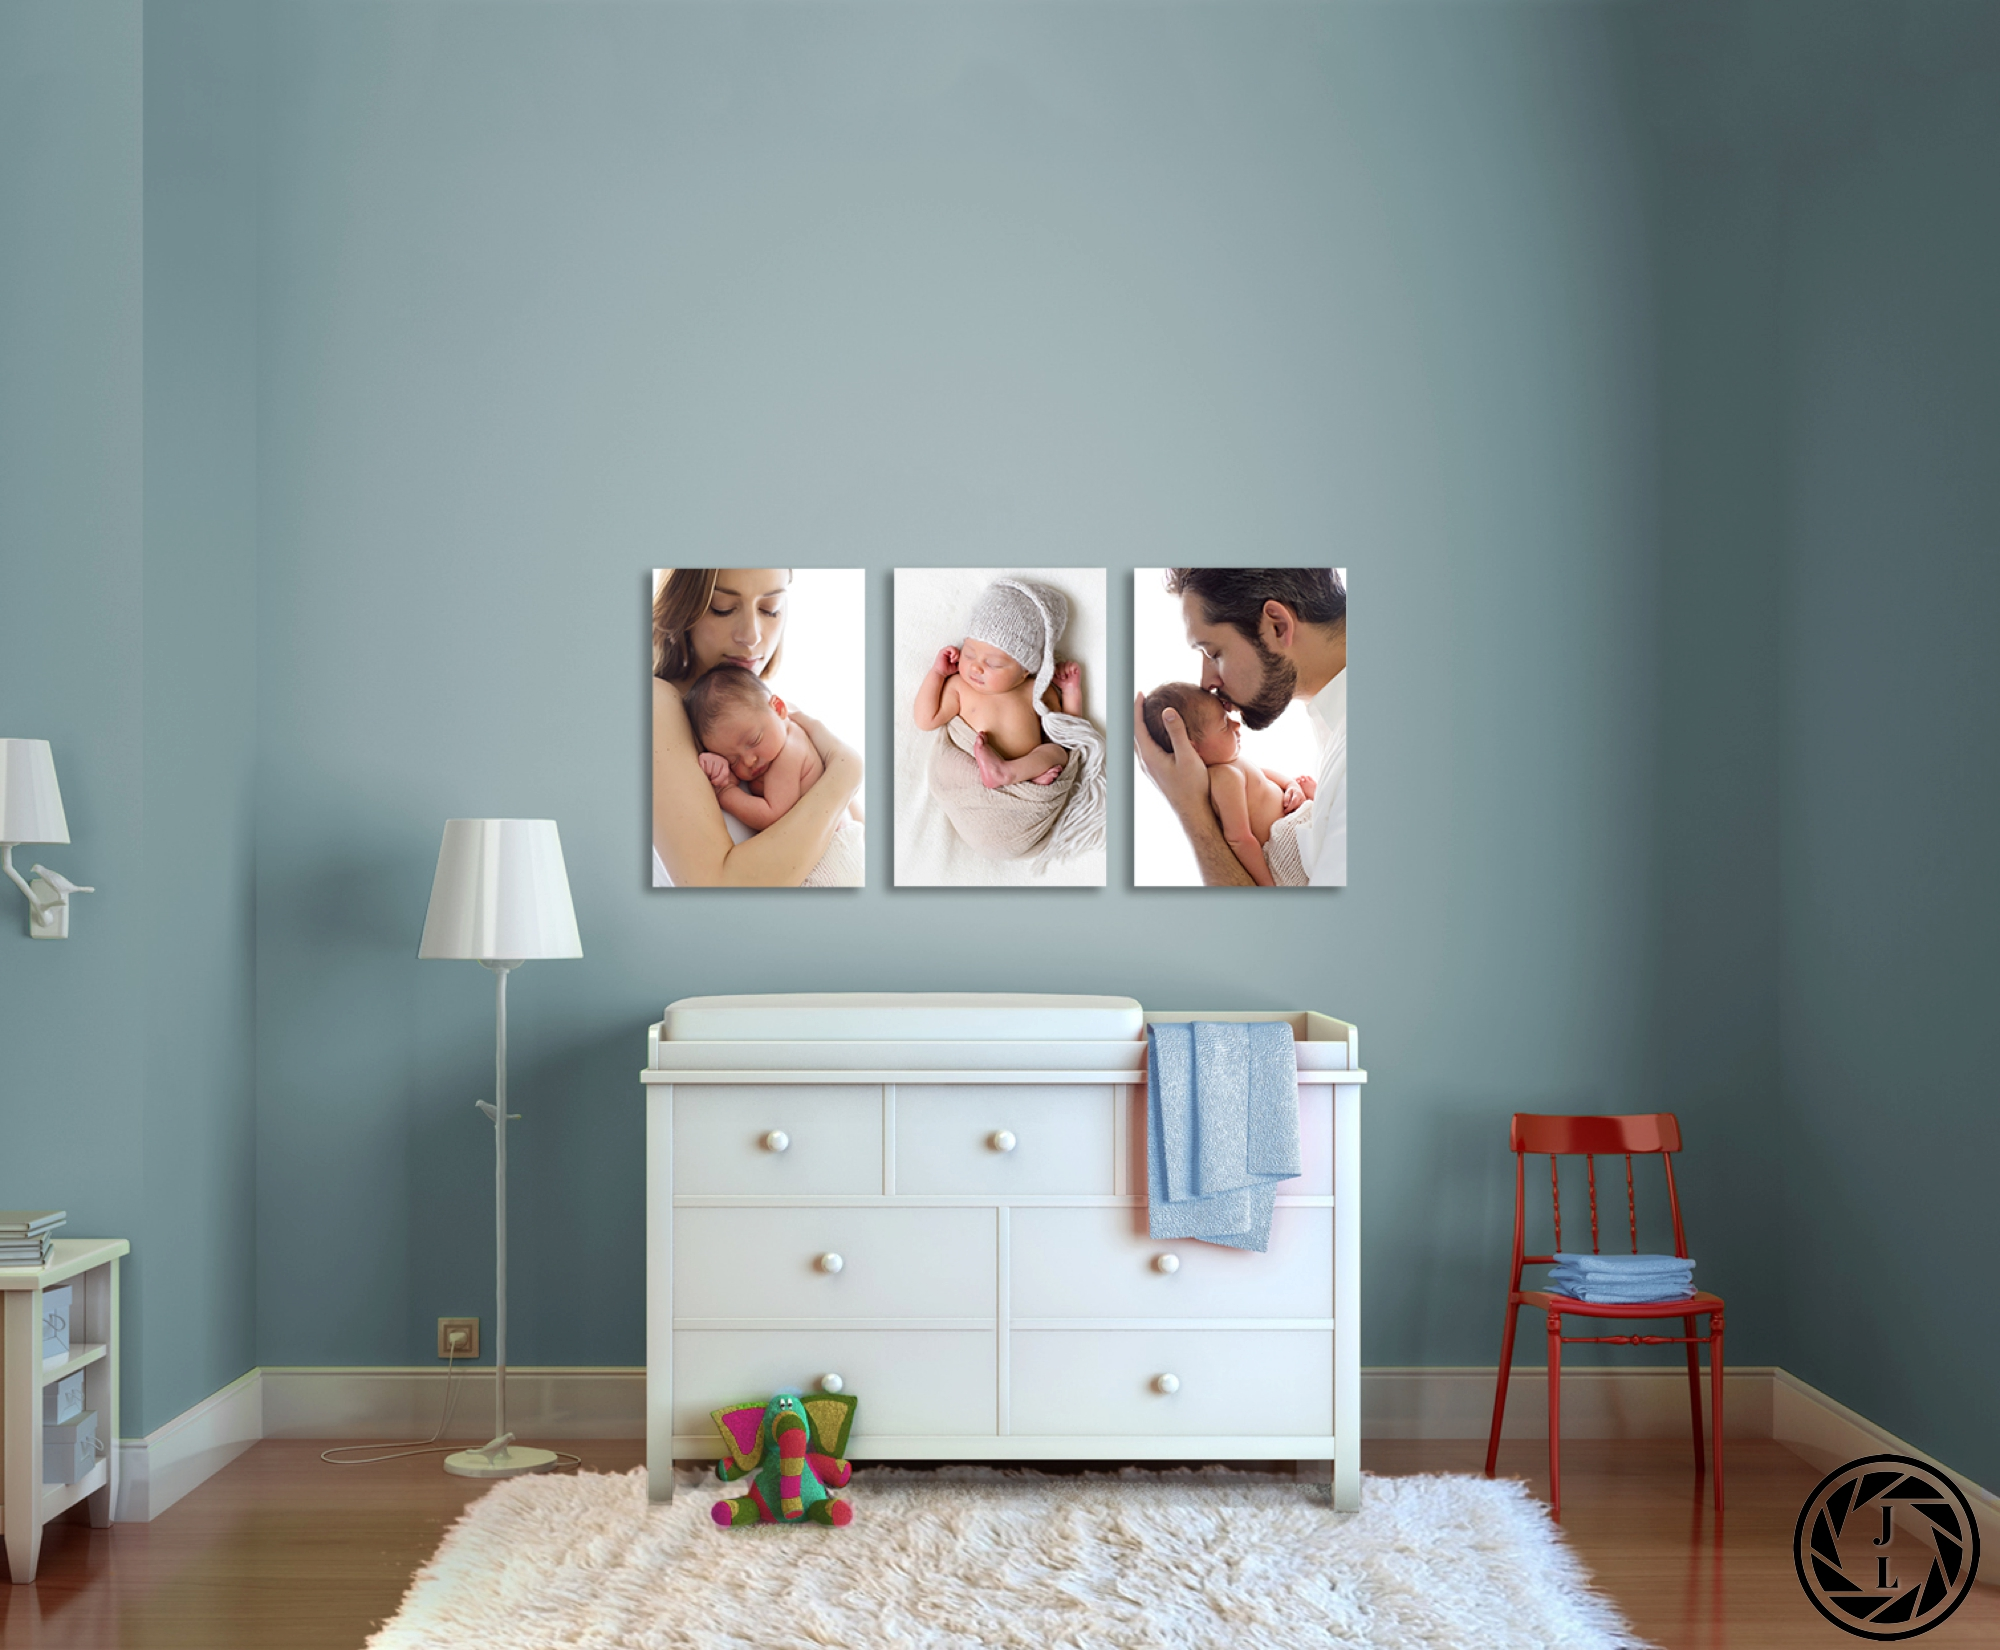 nursery set up with family portraits on the wall